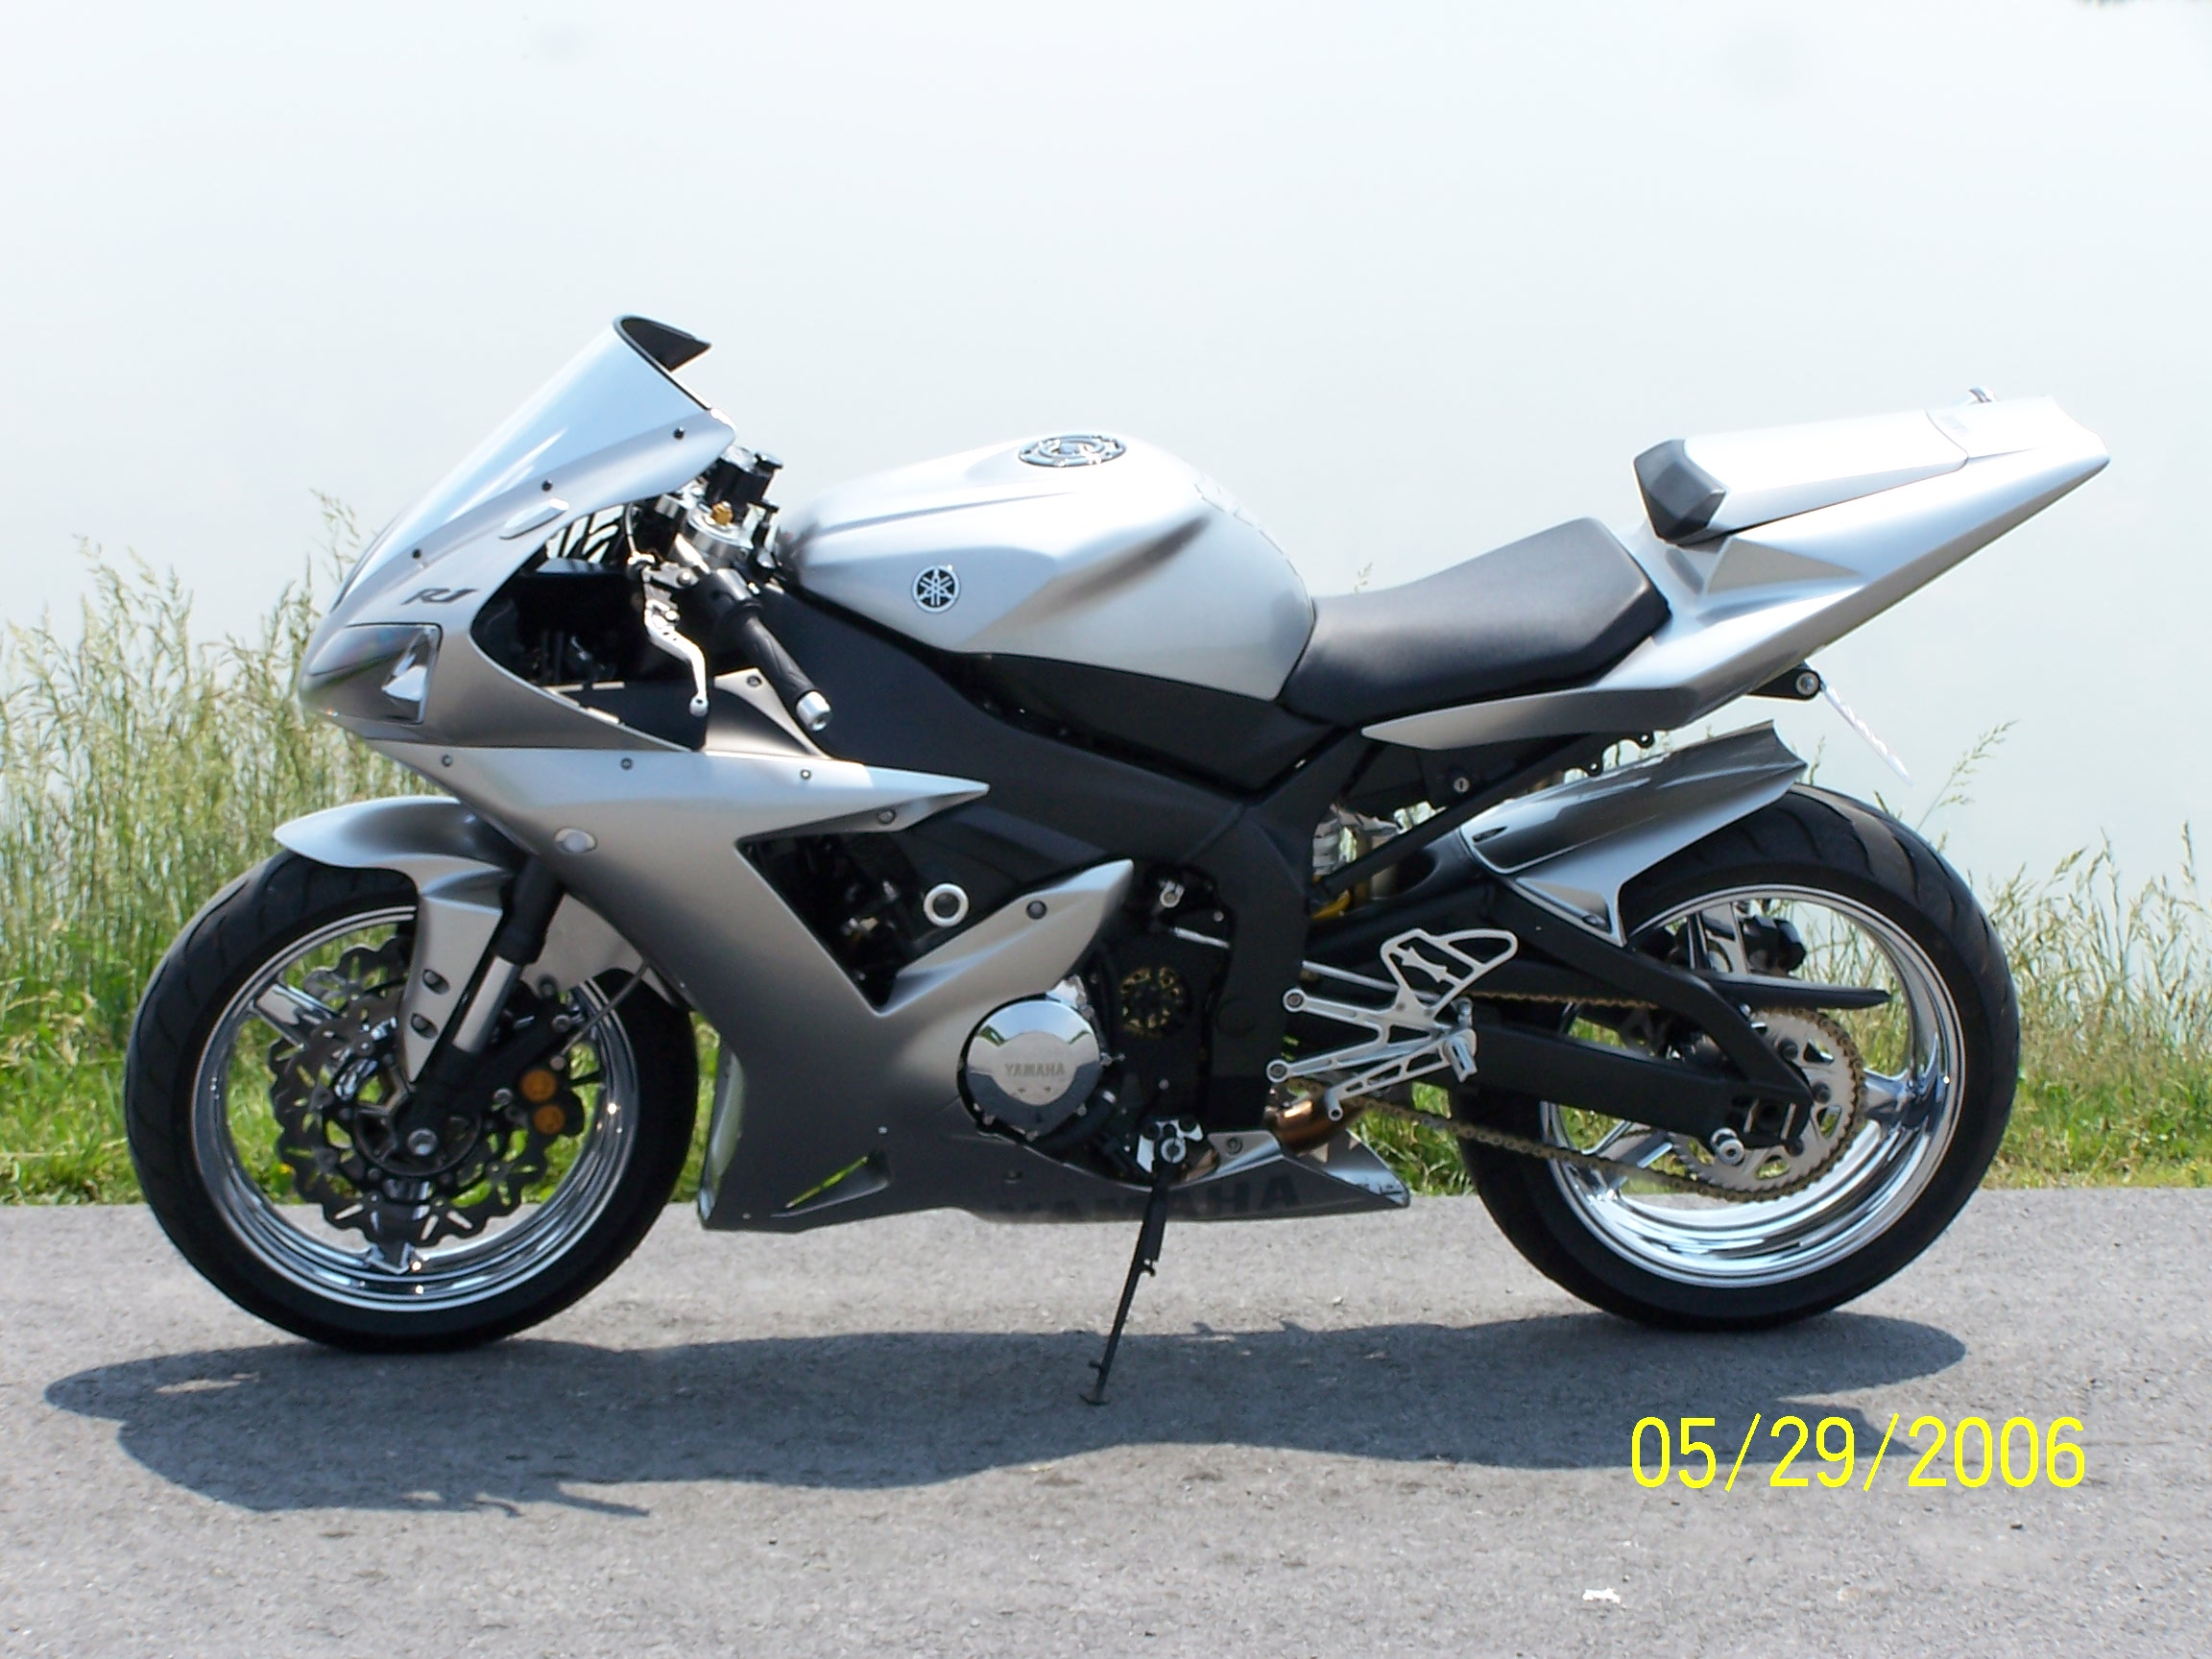 Bikes For Sale Near Me D Immaculant Modded Low Mile R